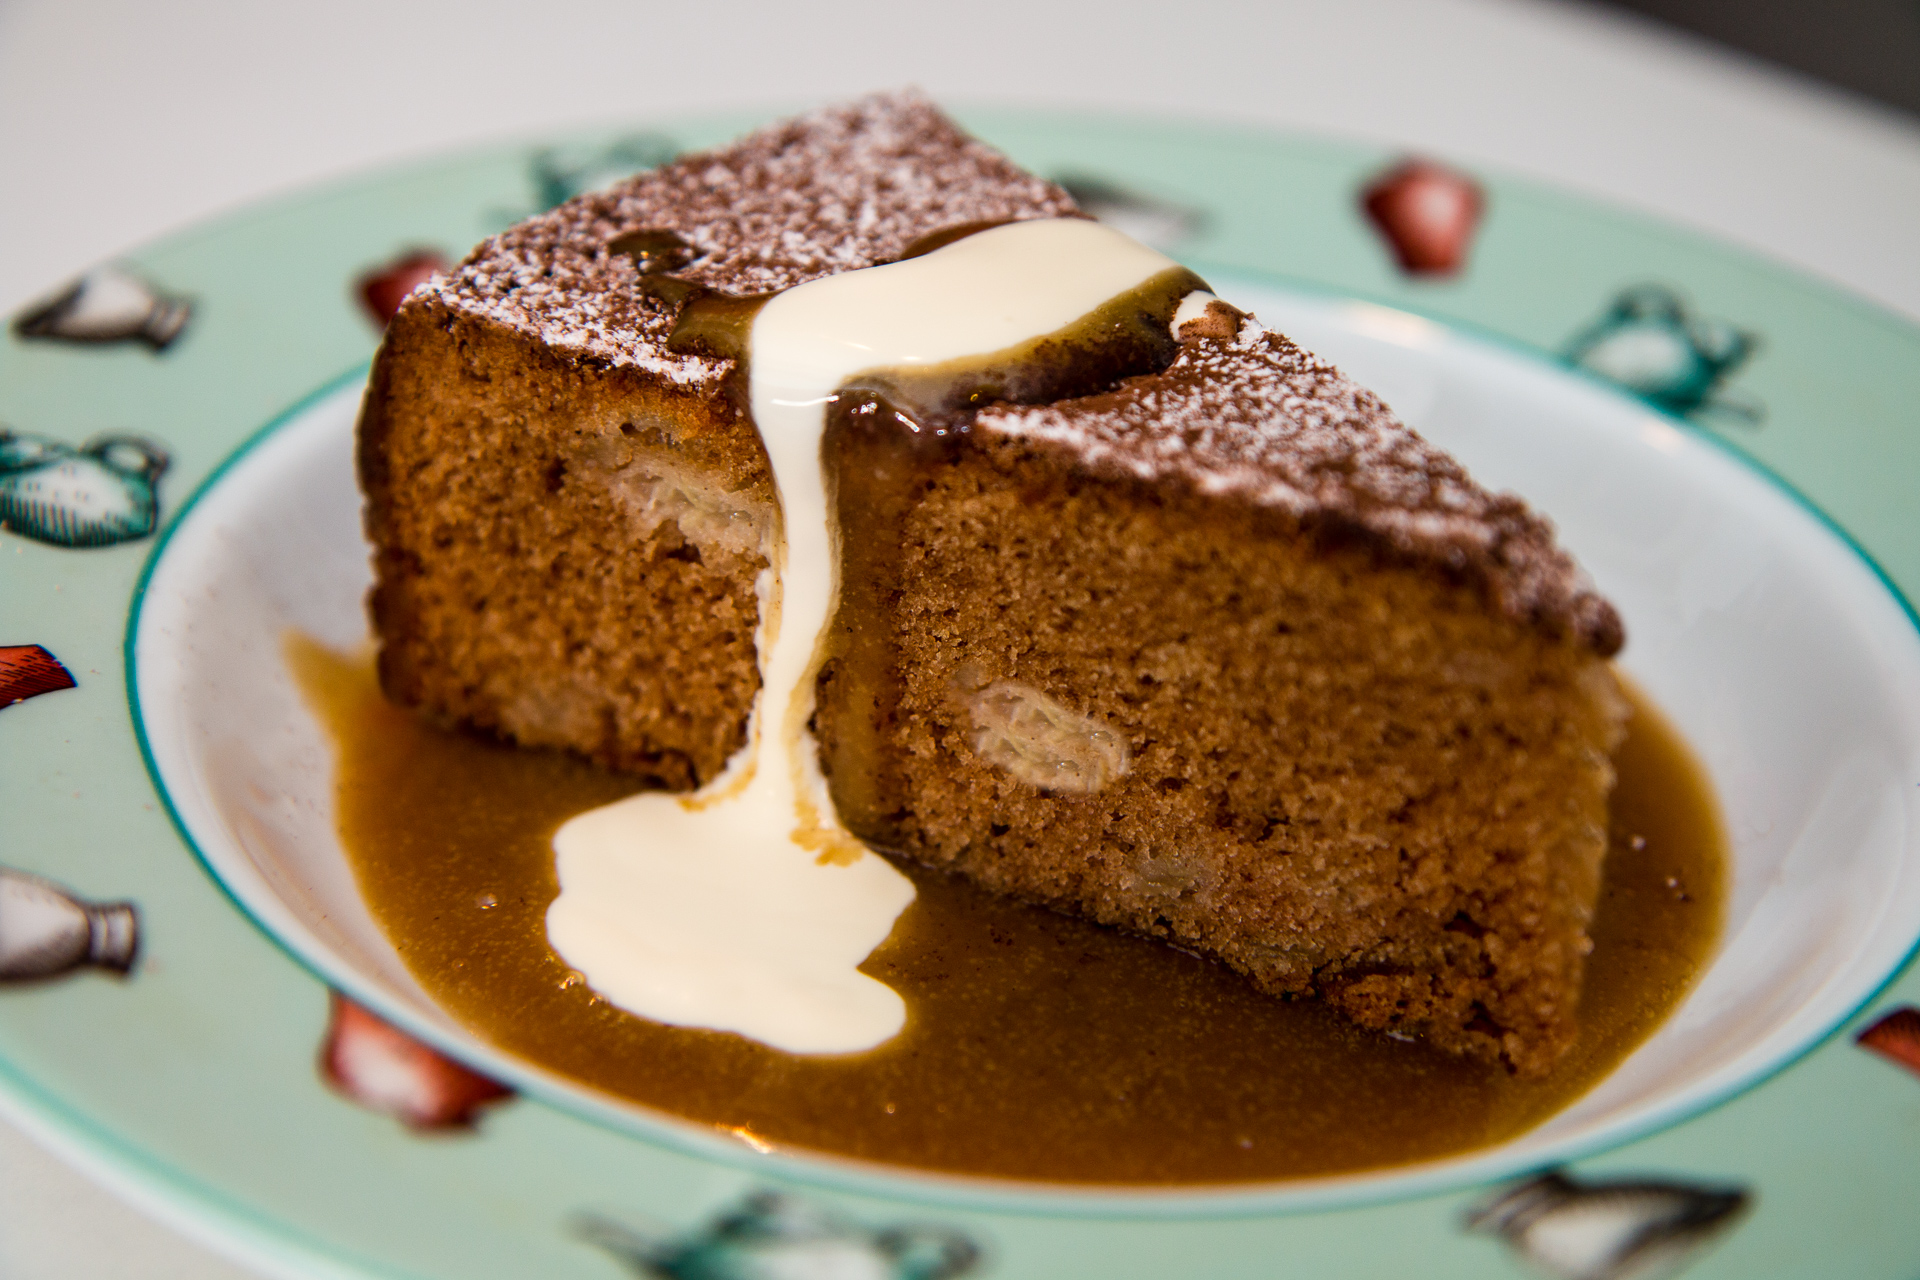 Packham Pear Cake with Butterscotch Sauce - Cheffing Around recipe of the month